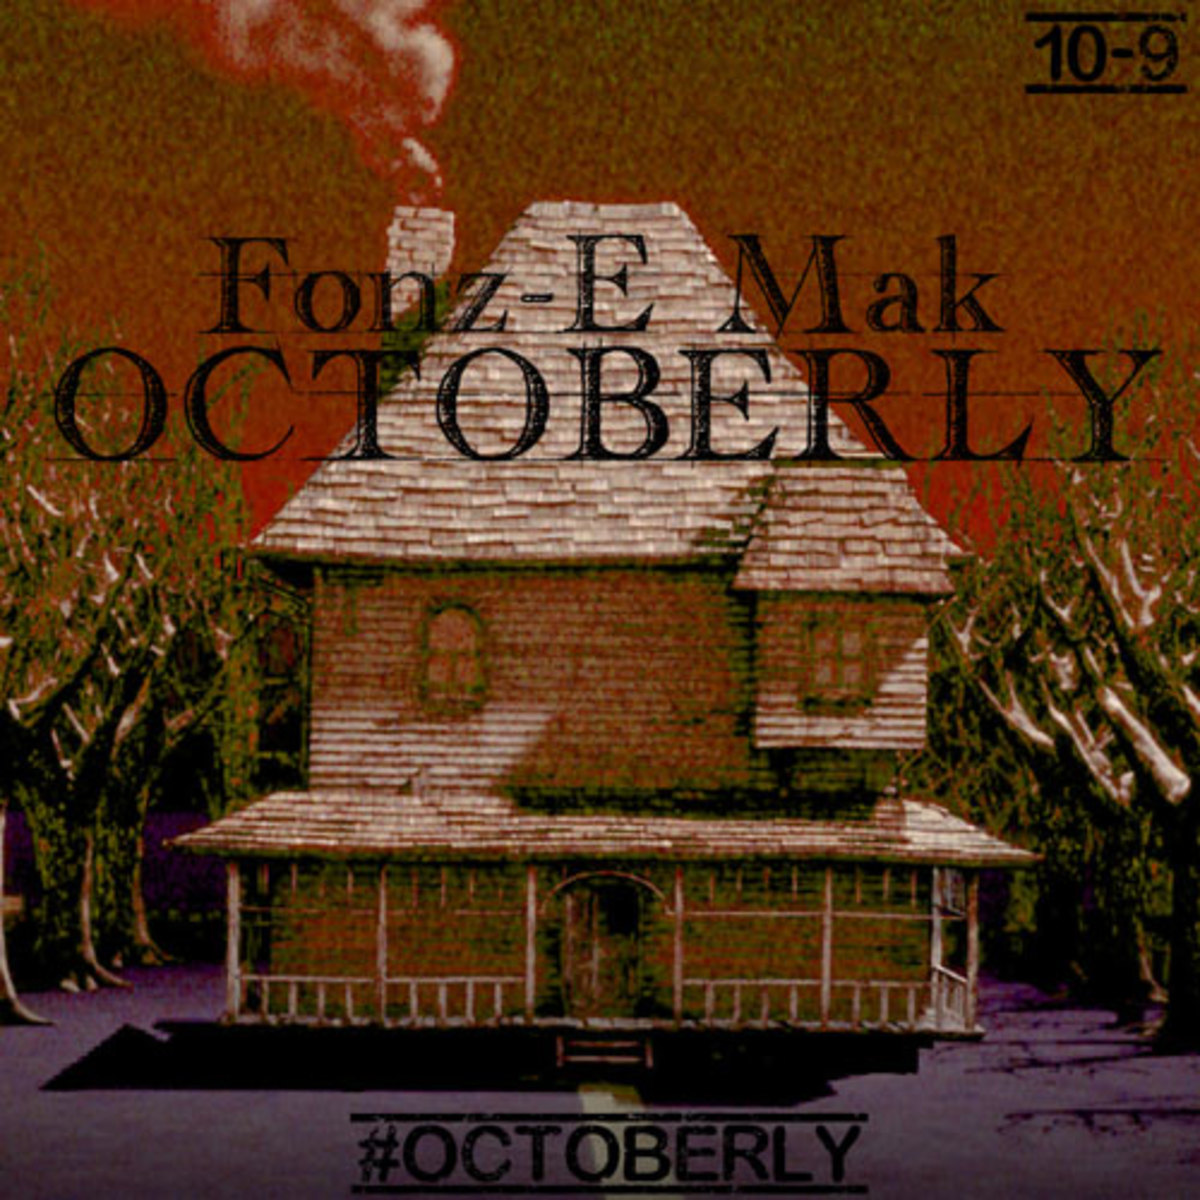 fonzemack-octoberly.jpg